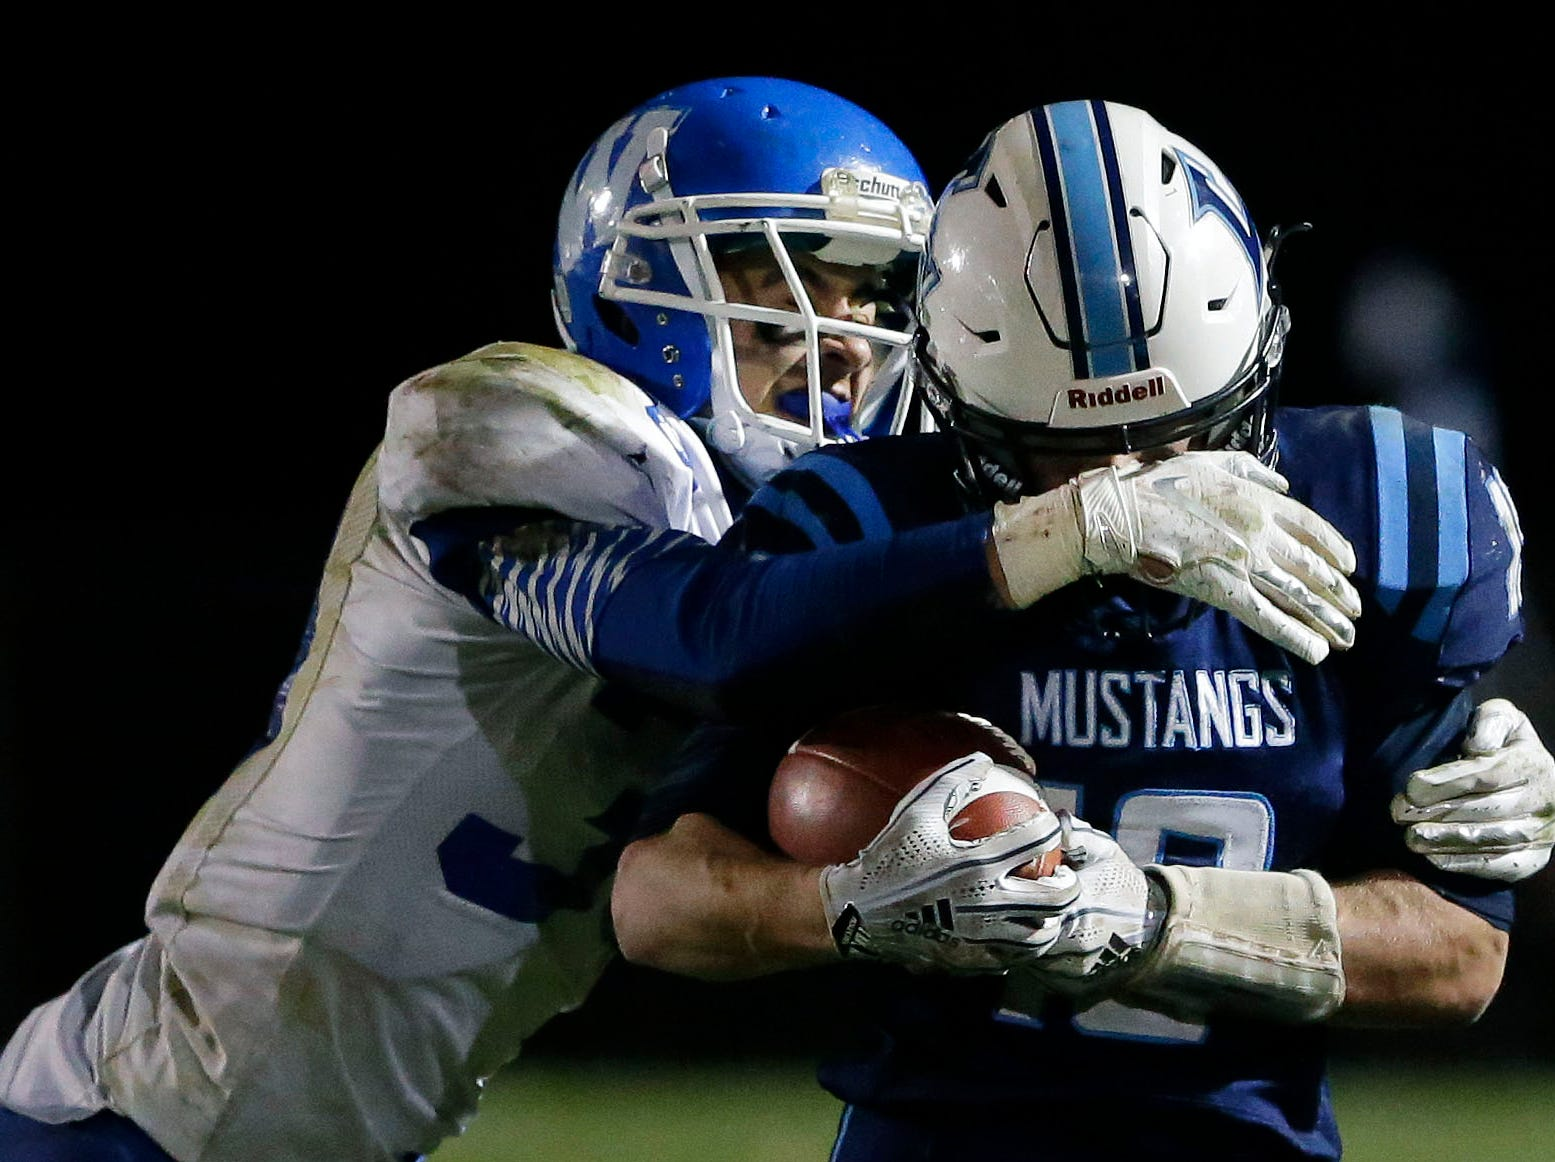 Jacob Lillge of Little Chute is tackled by Jeremy Van Zeeland of Wrightstown in a WIAA Division 4 Level 3 playoff game Friday, November 2, 2018, at Fitzpatrick Field in Little Chute, Wis.